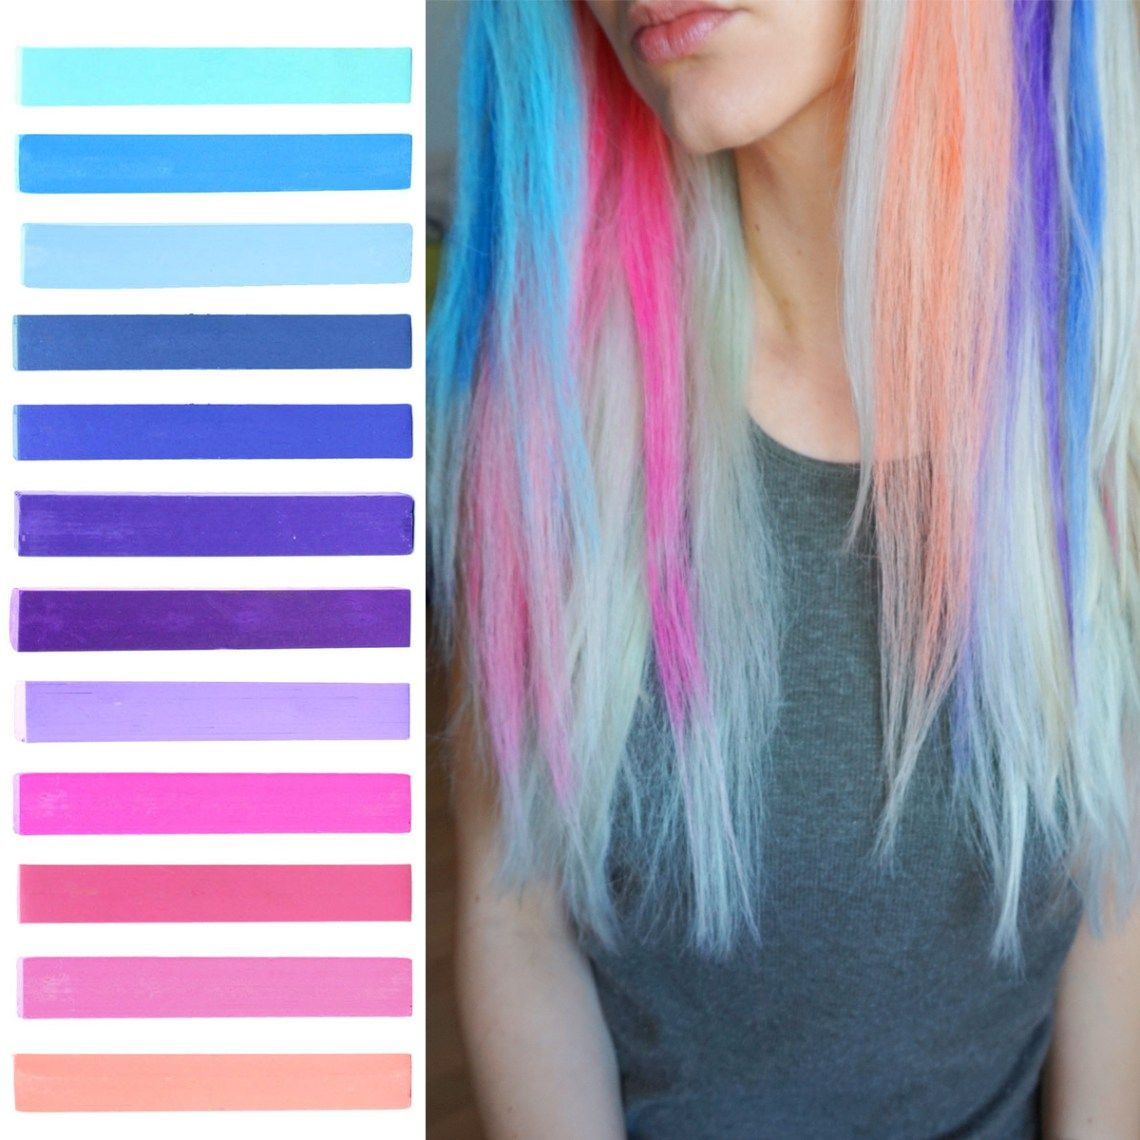 Dye your hair simple & easy to ombre galaxy hair color - temporarily use ombre galaxy hair dye to achieve brilliant results! DIY your hair ombre with hair chalk